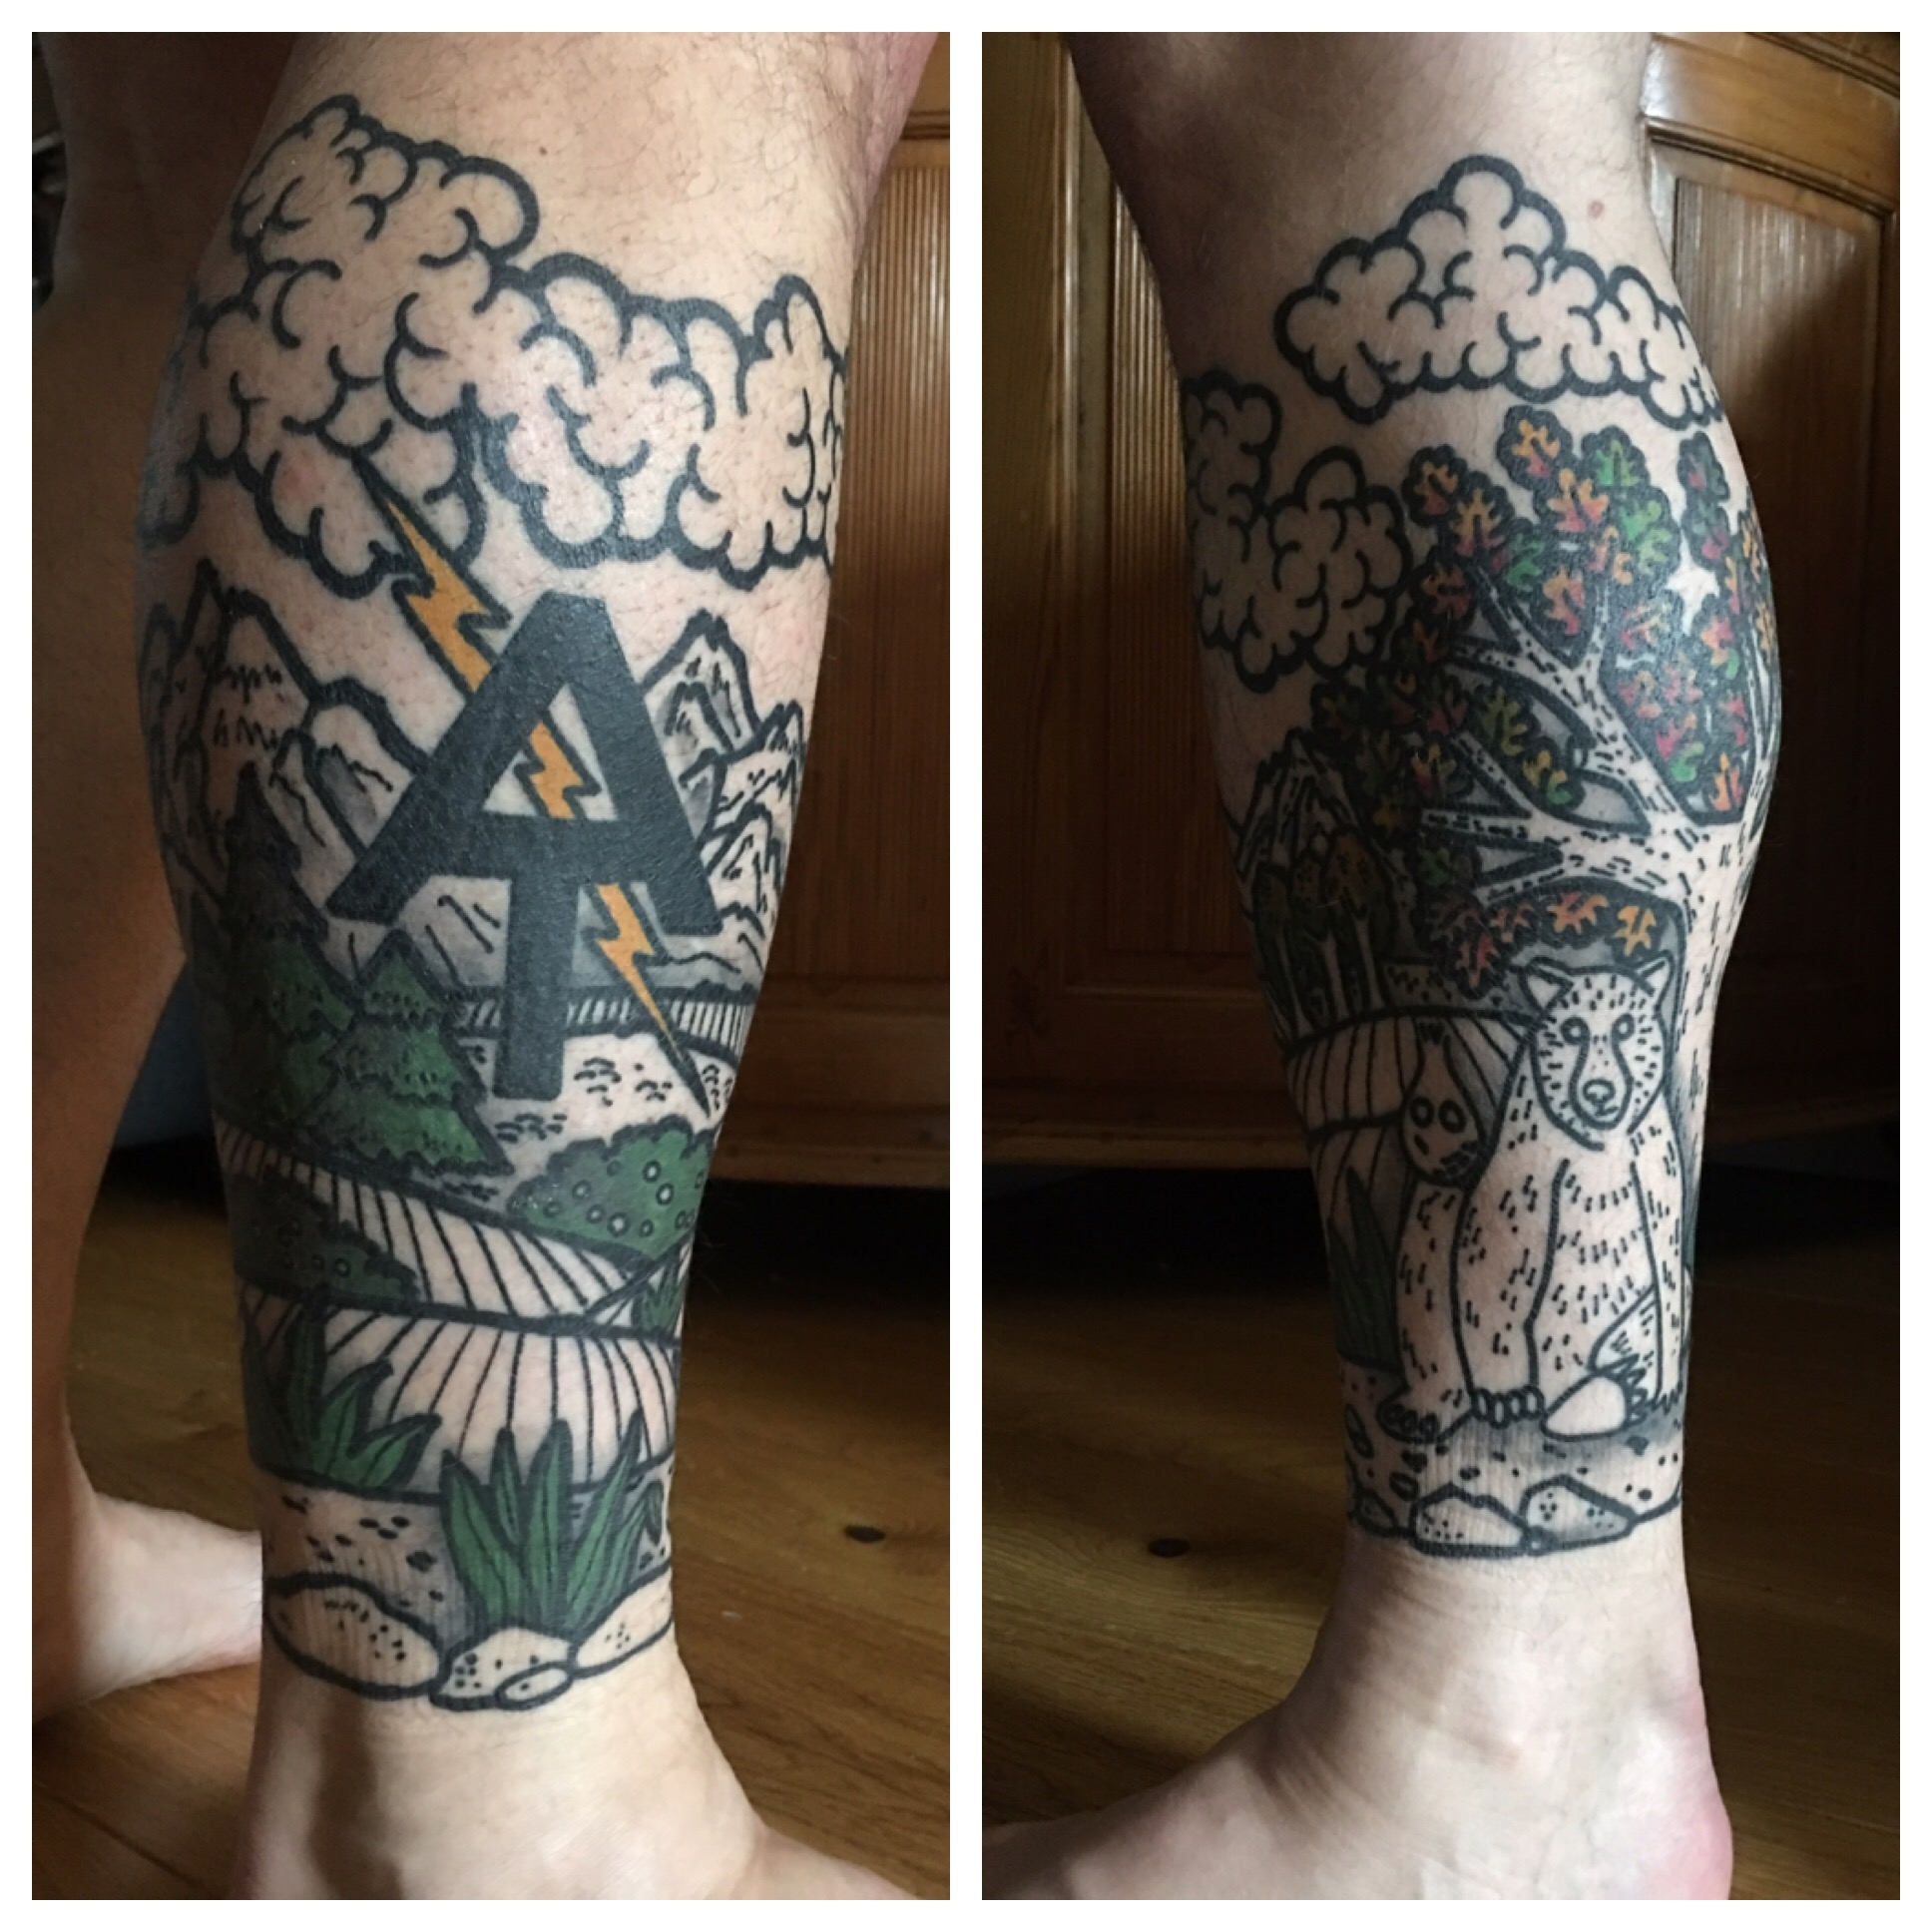 Appalachian Trail Tattoo